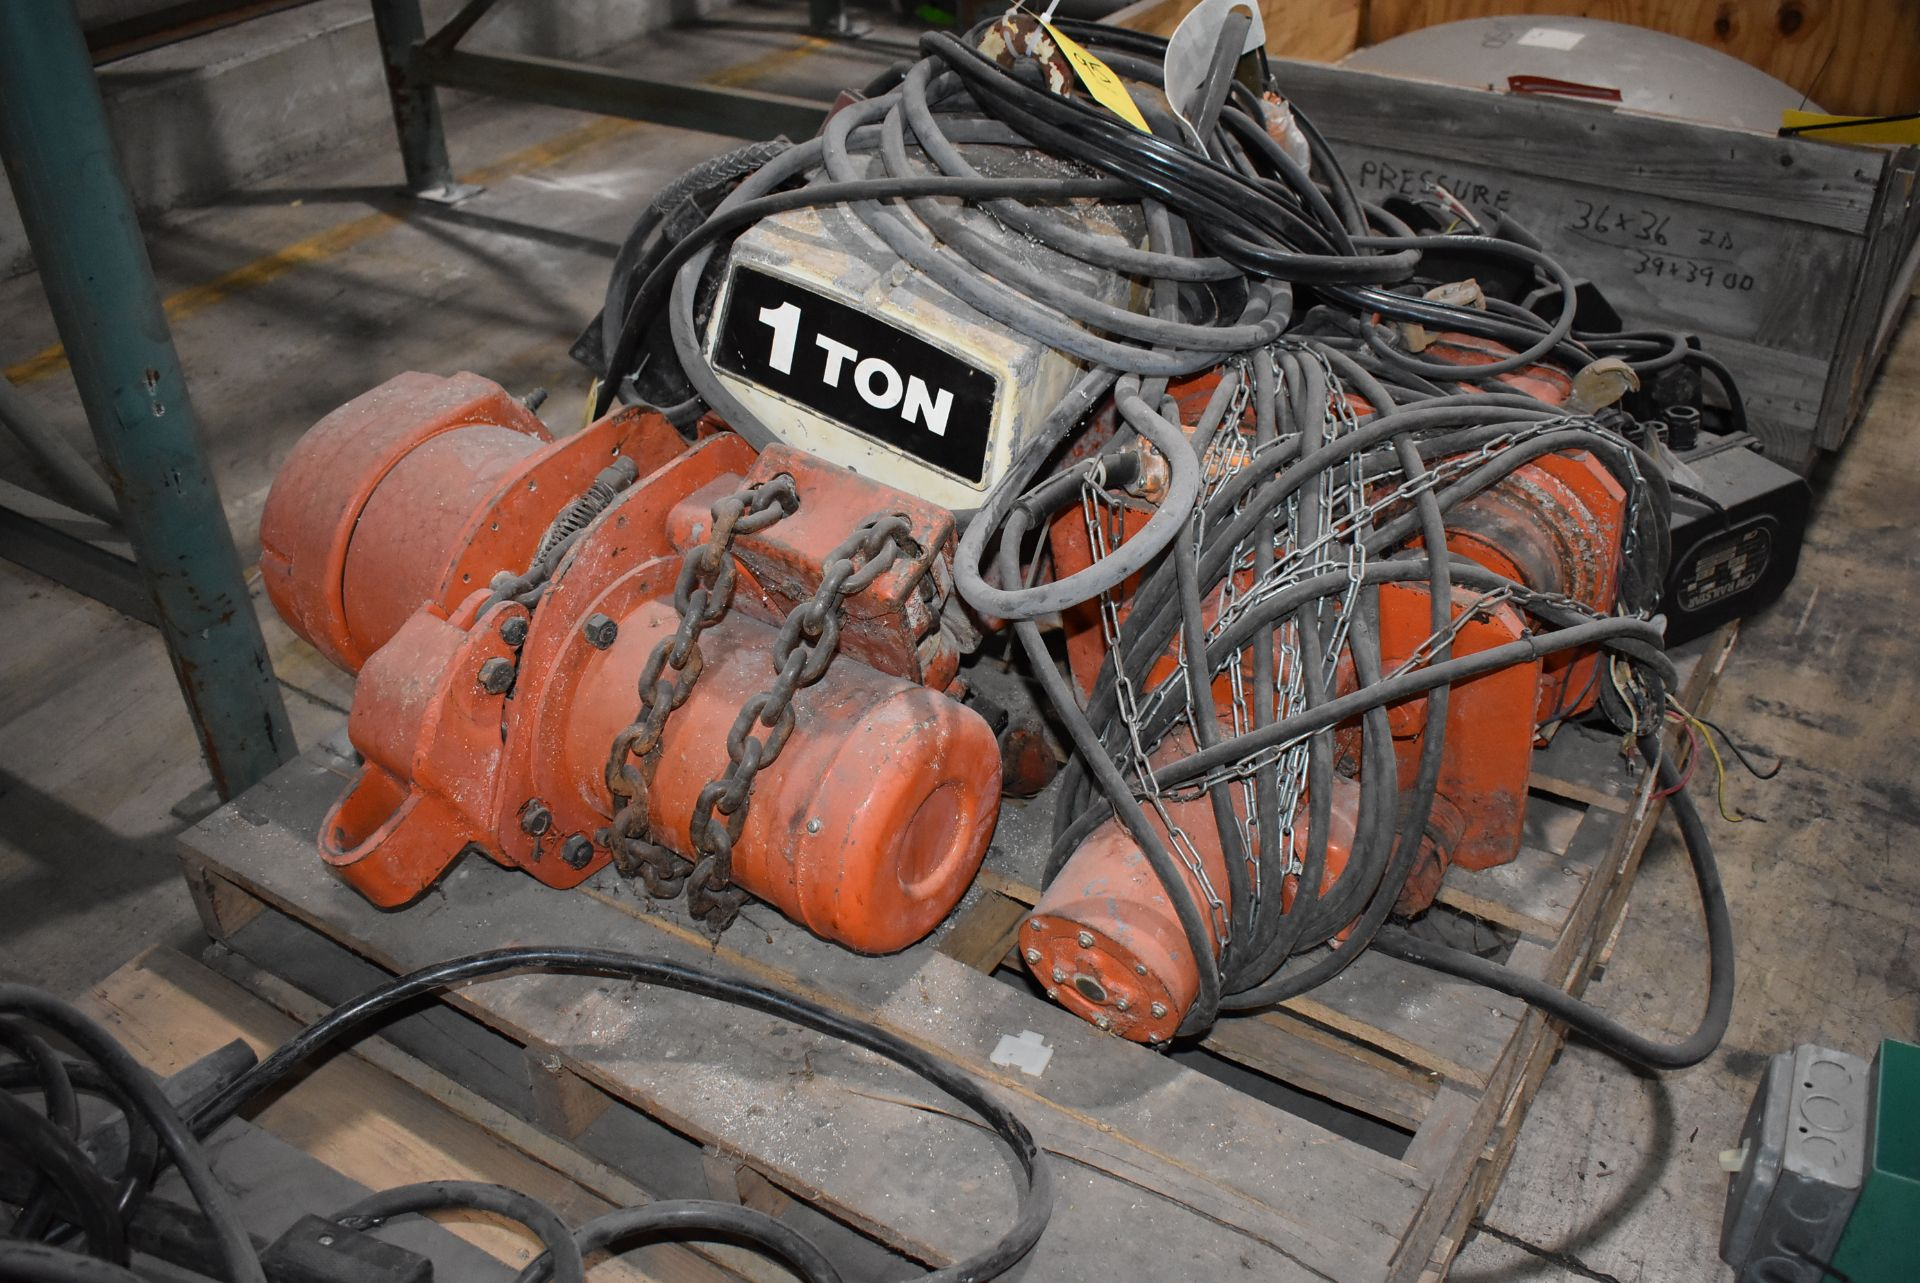 Plant Support - (4) Material Handling Hoists, (1) CW Railstar Trolley - Image 2 of 3